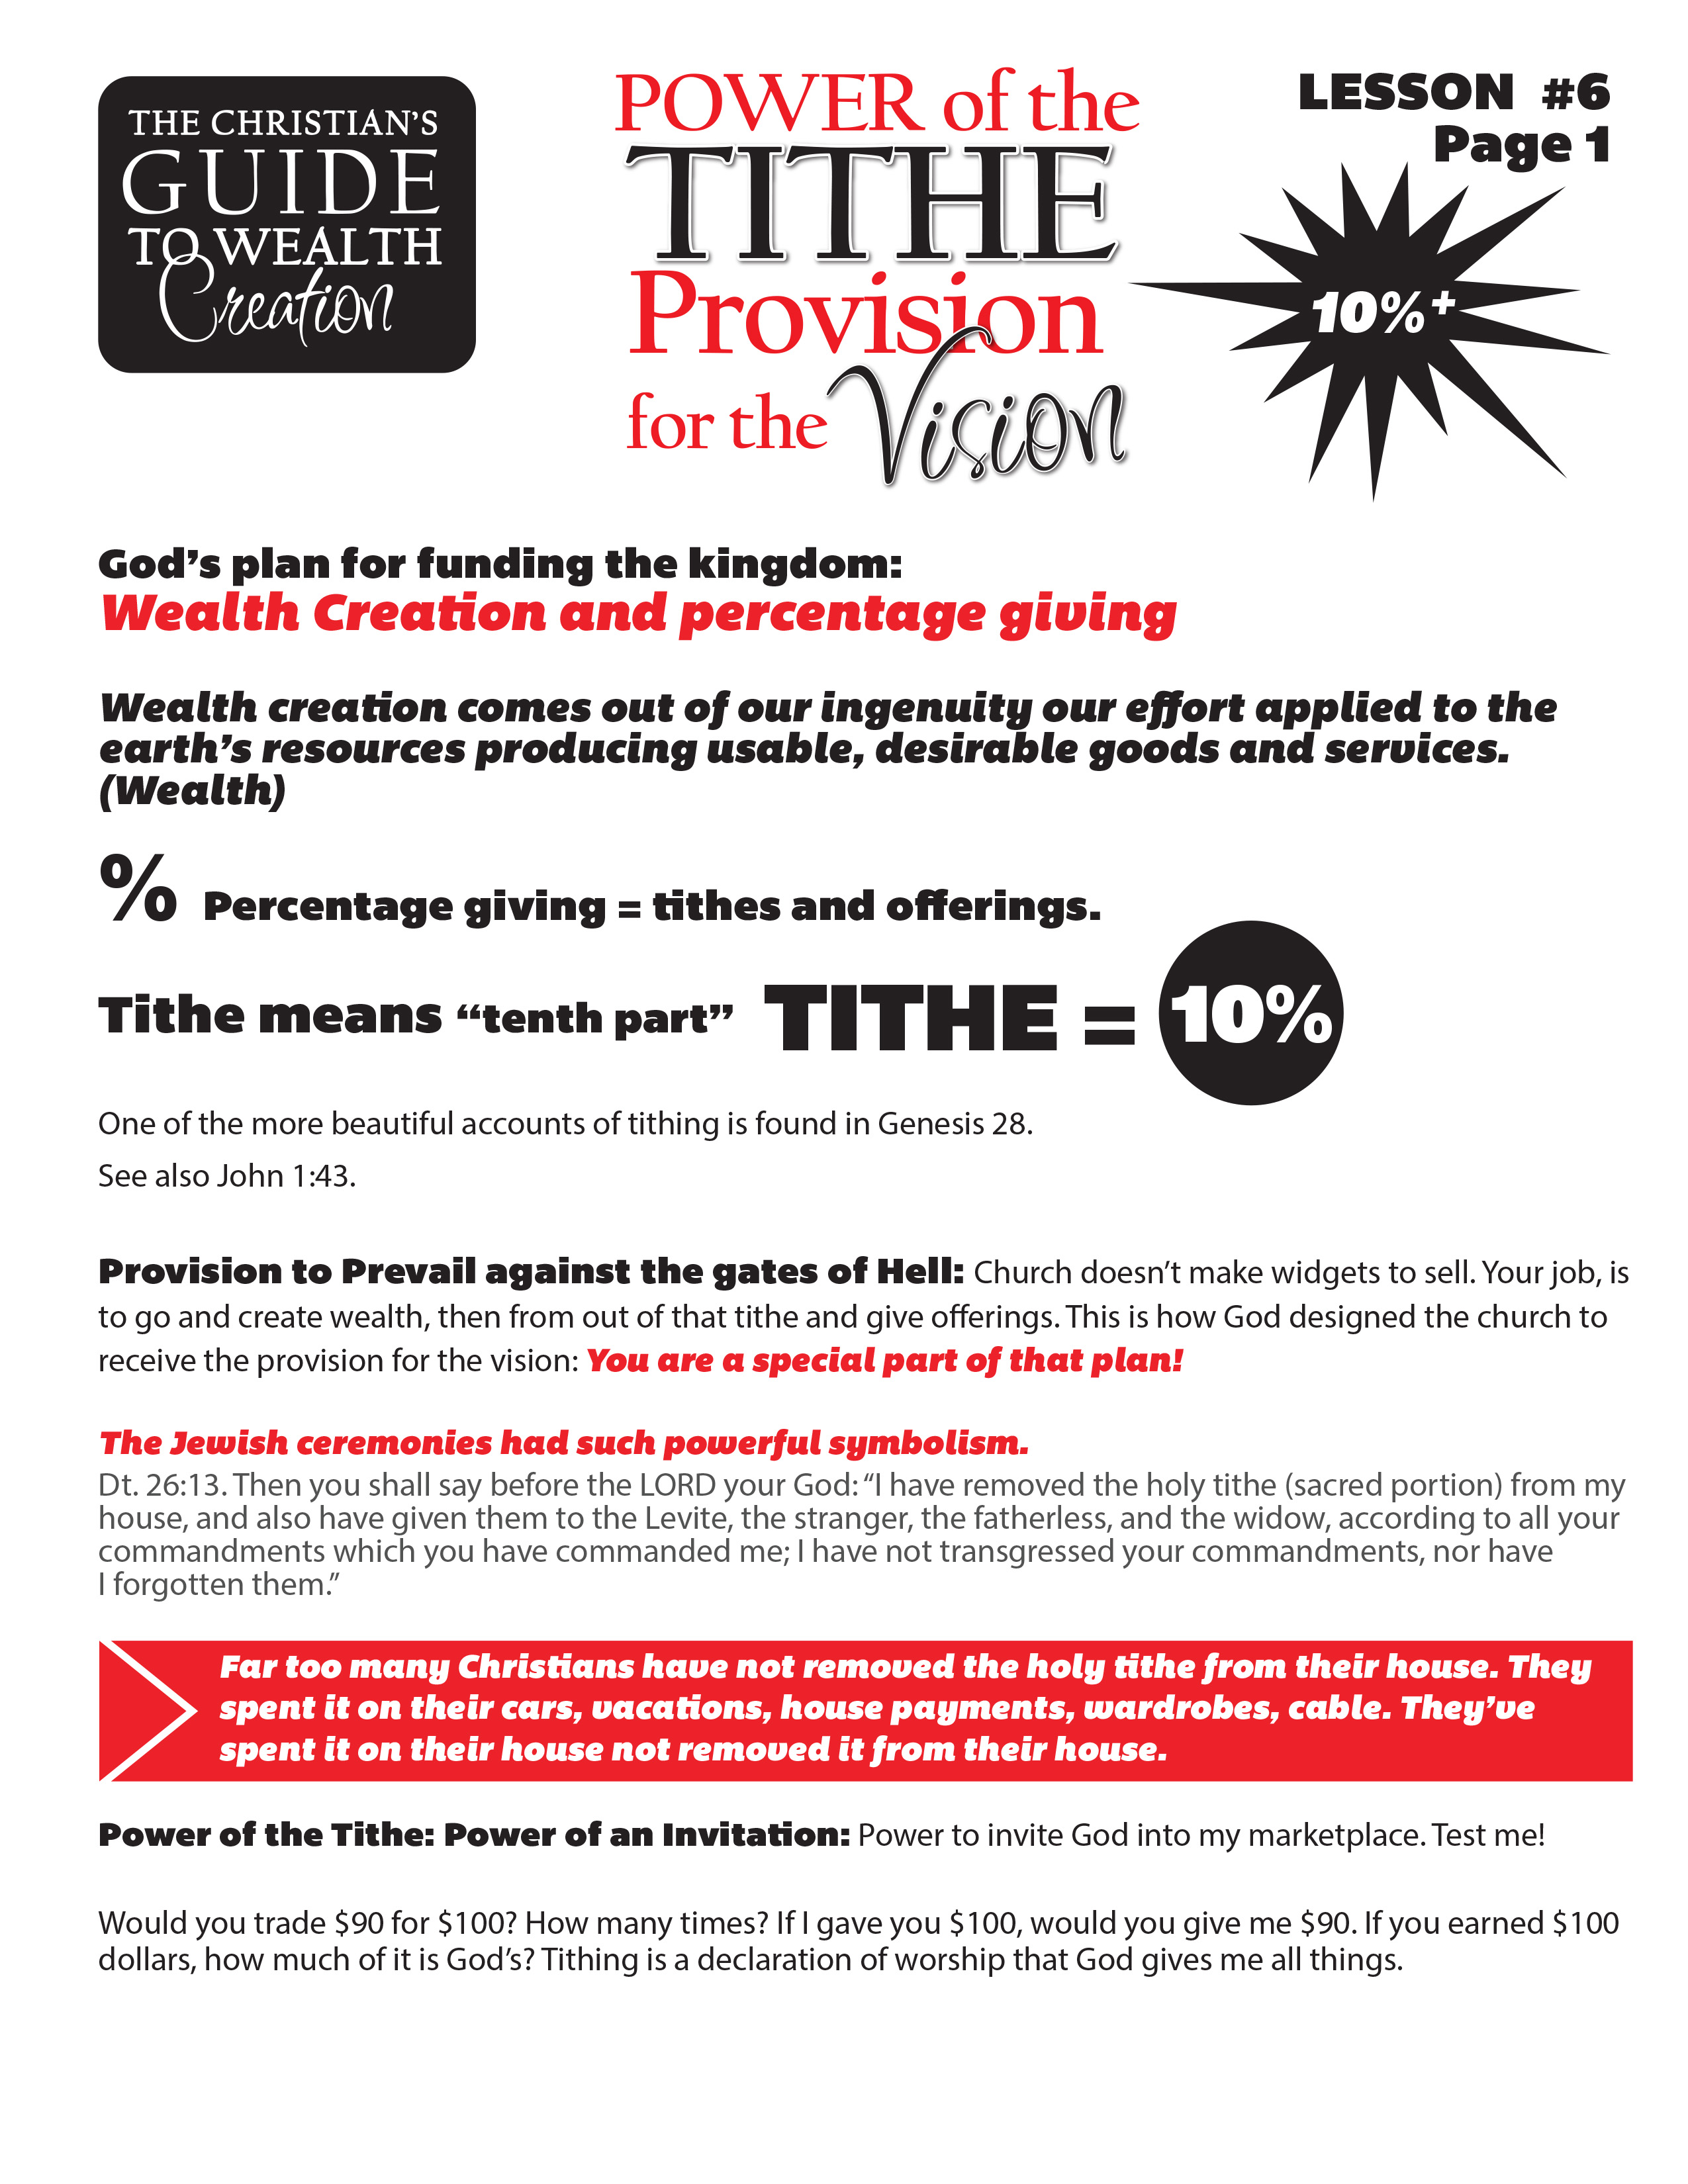 Lesson 6 Power of the Tithe - Provision for the Vision page 1.jpg